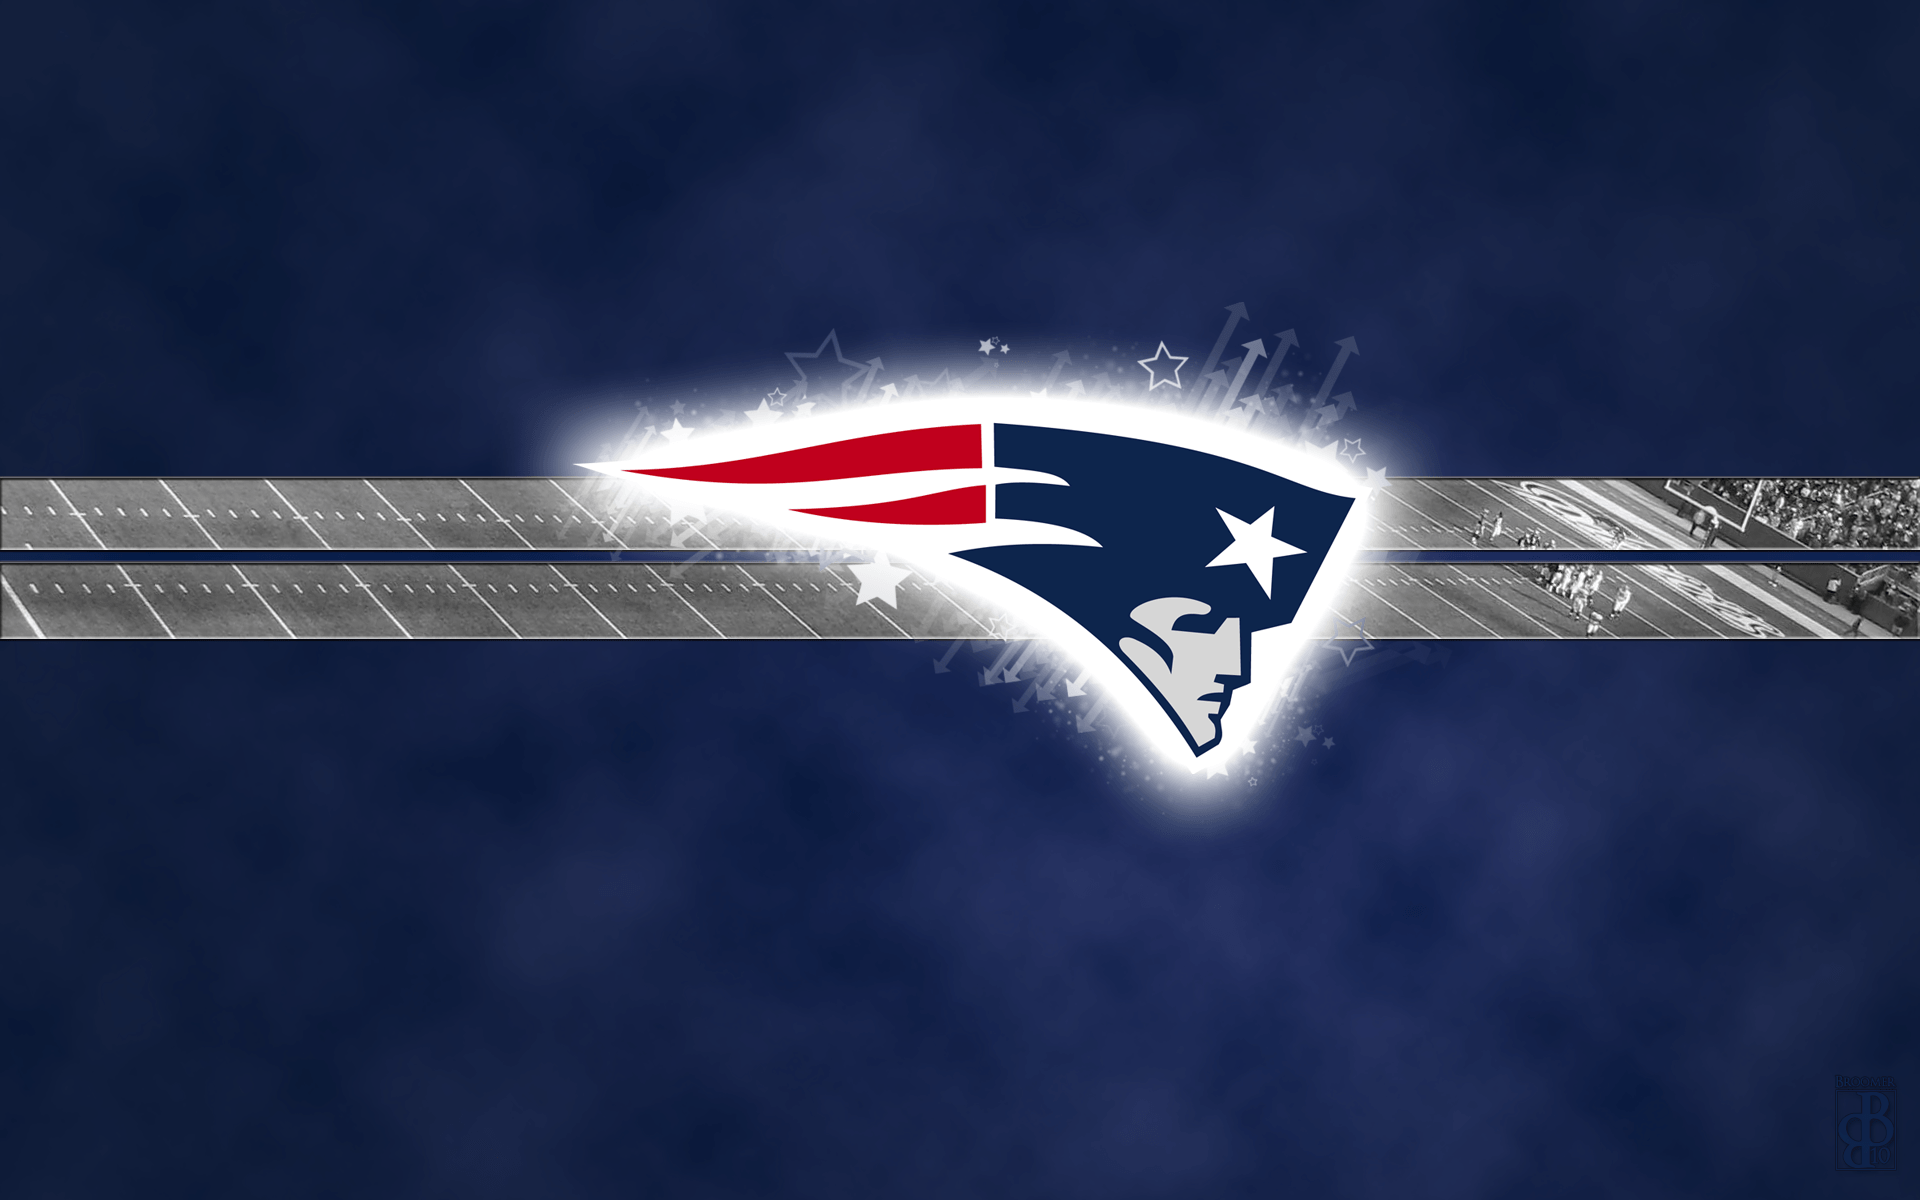 NFL Teams Wallpapers 2015 - Wallpaper Cave